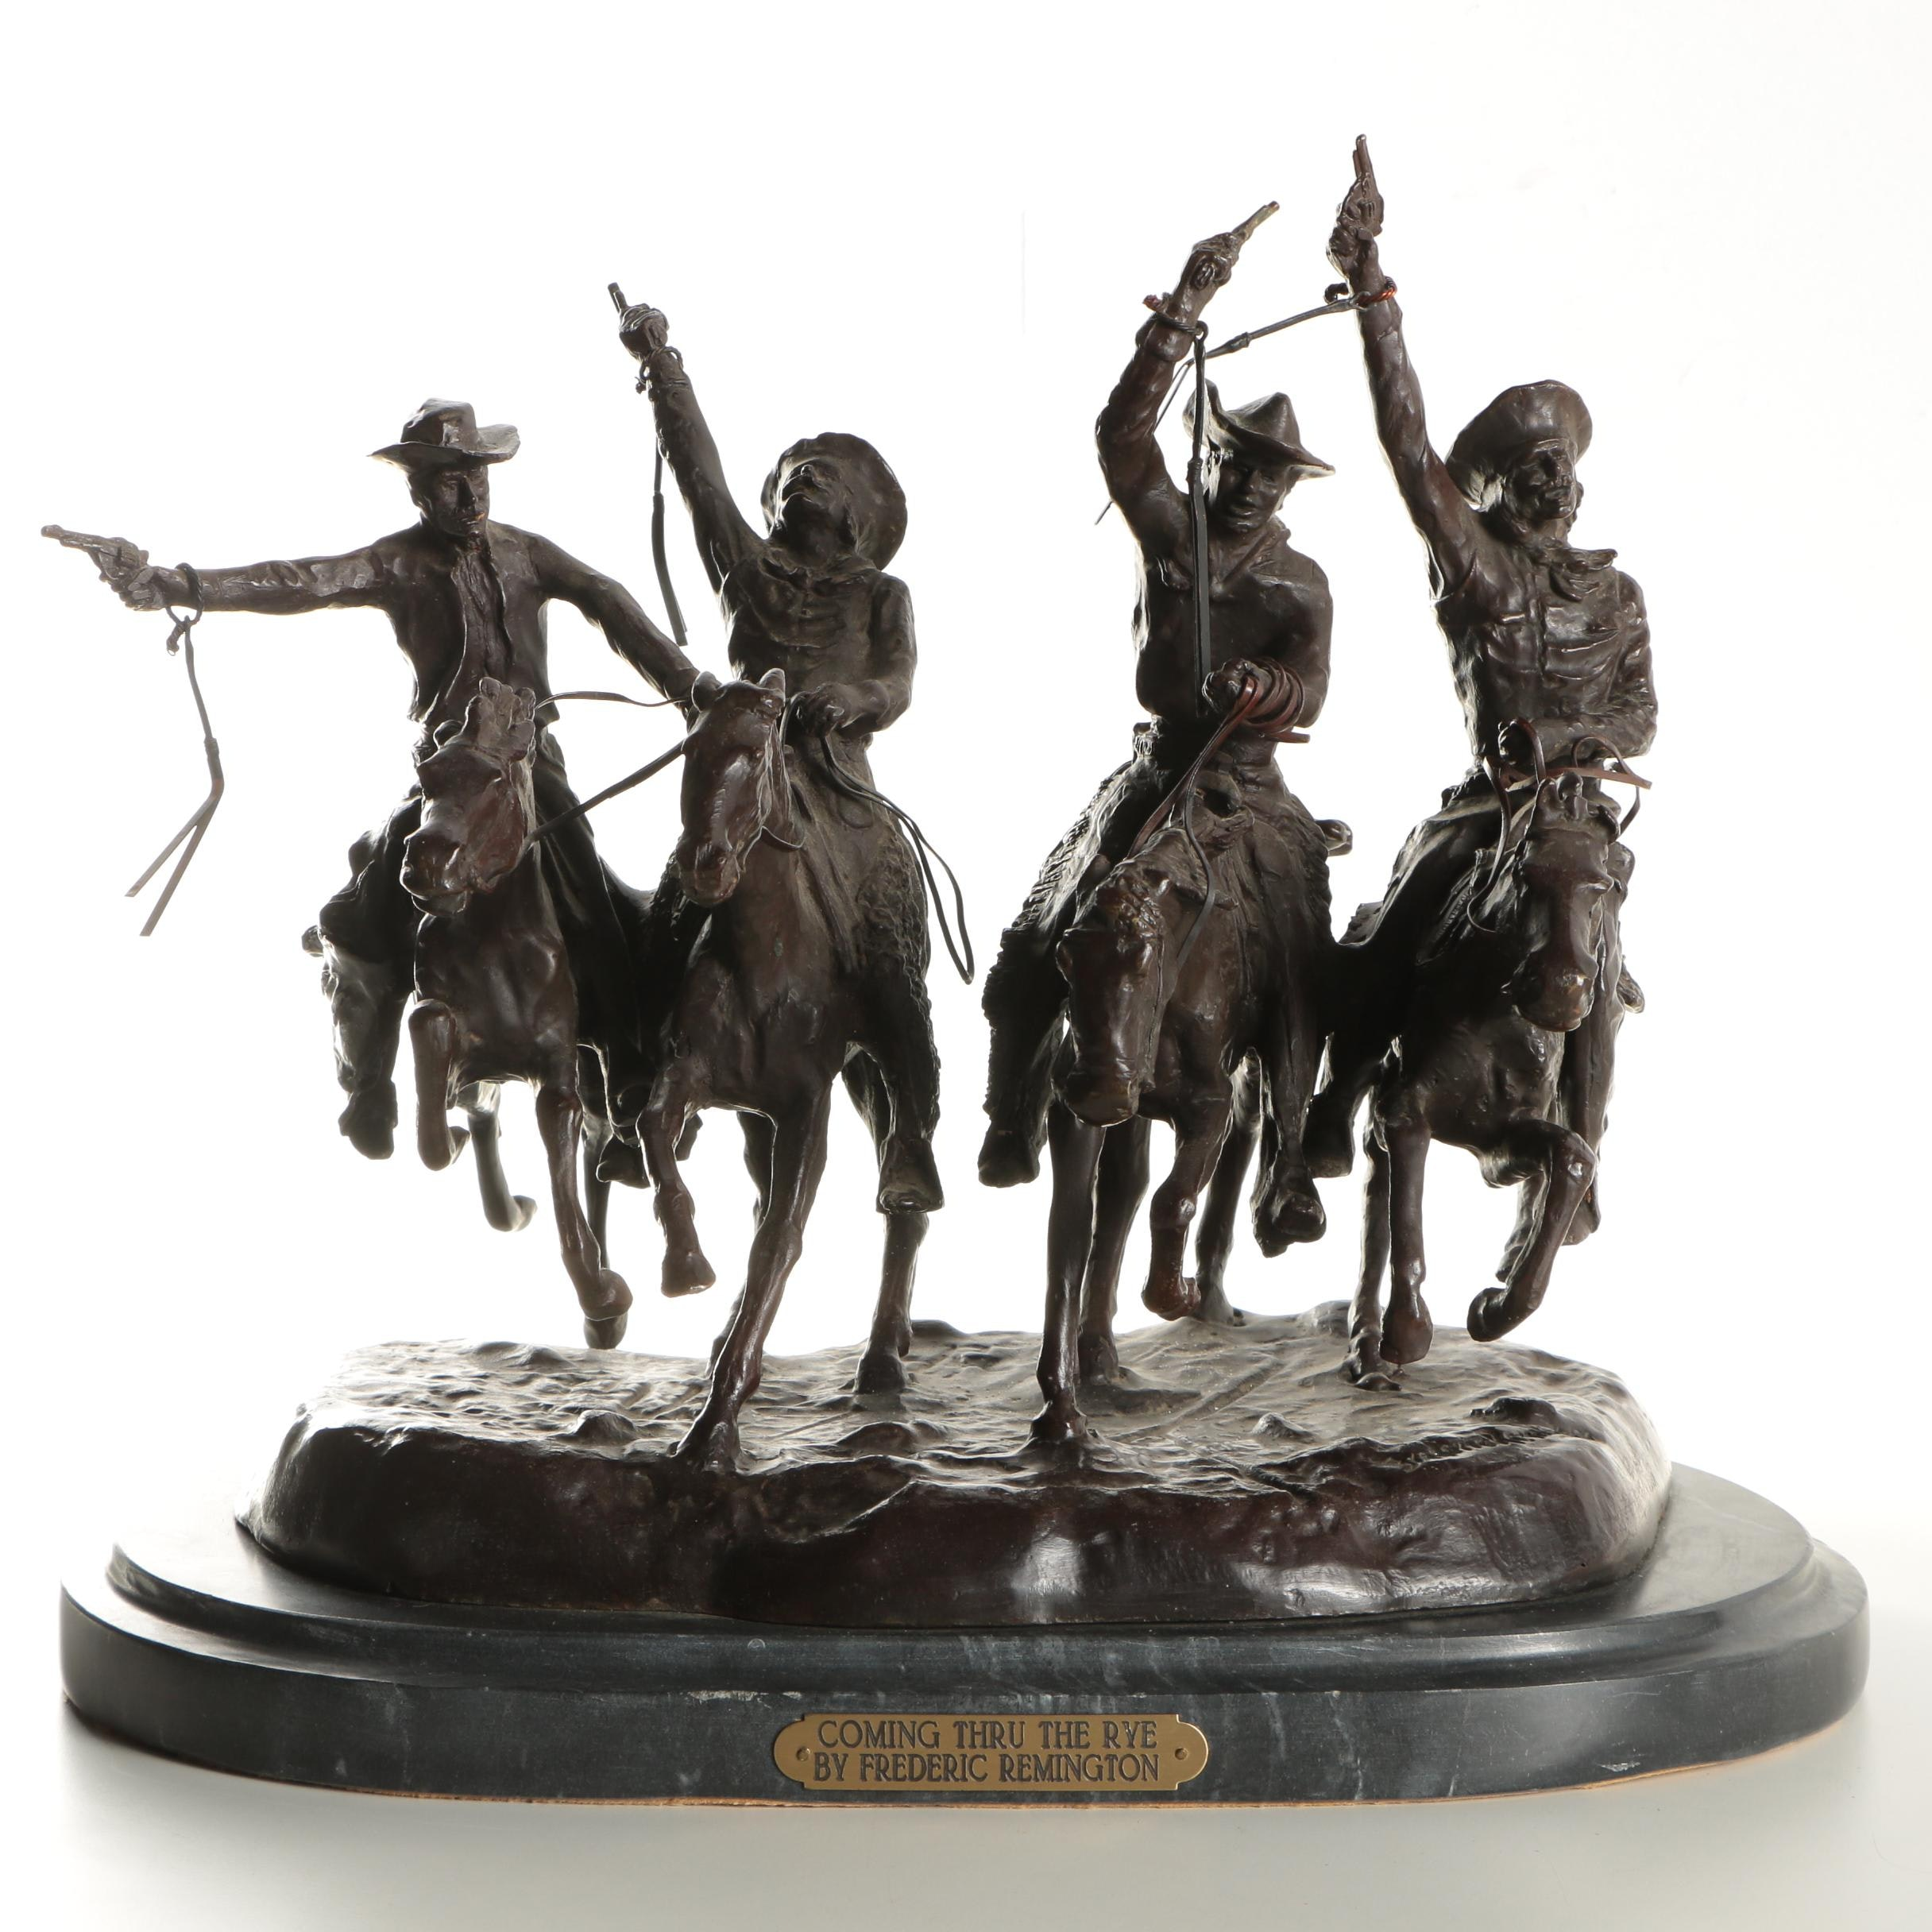 """Copper Alloy Sculpture After Frederic Remington's """"Coming Through the Rye"""""""